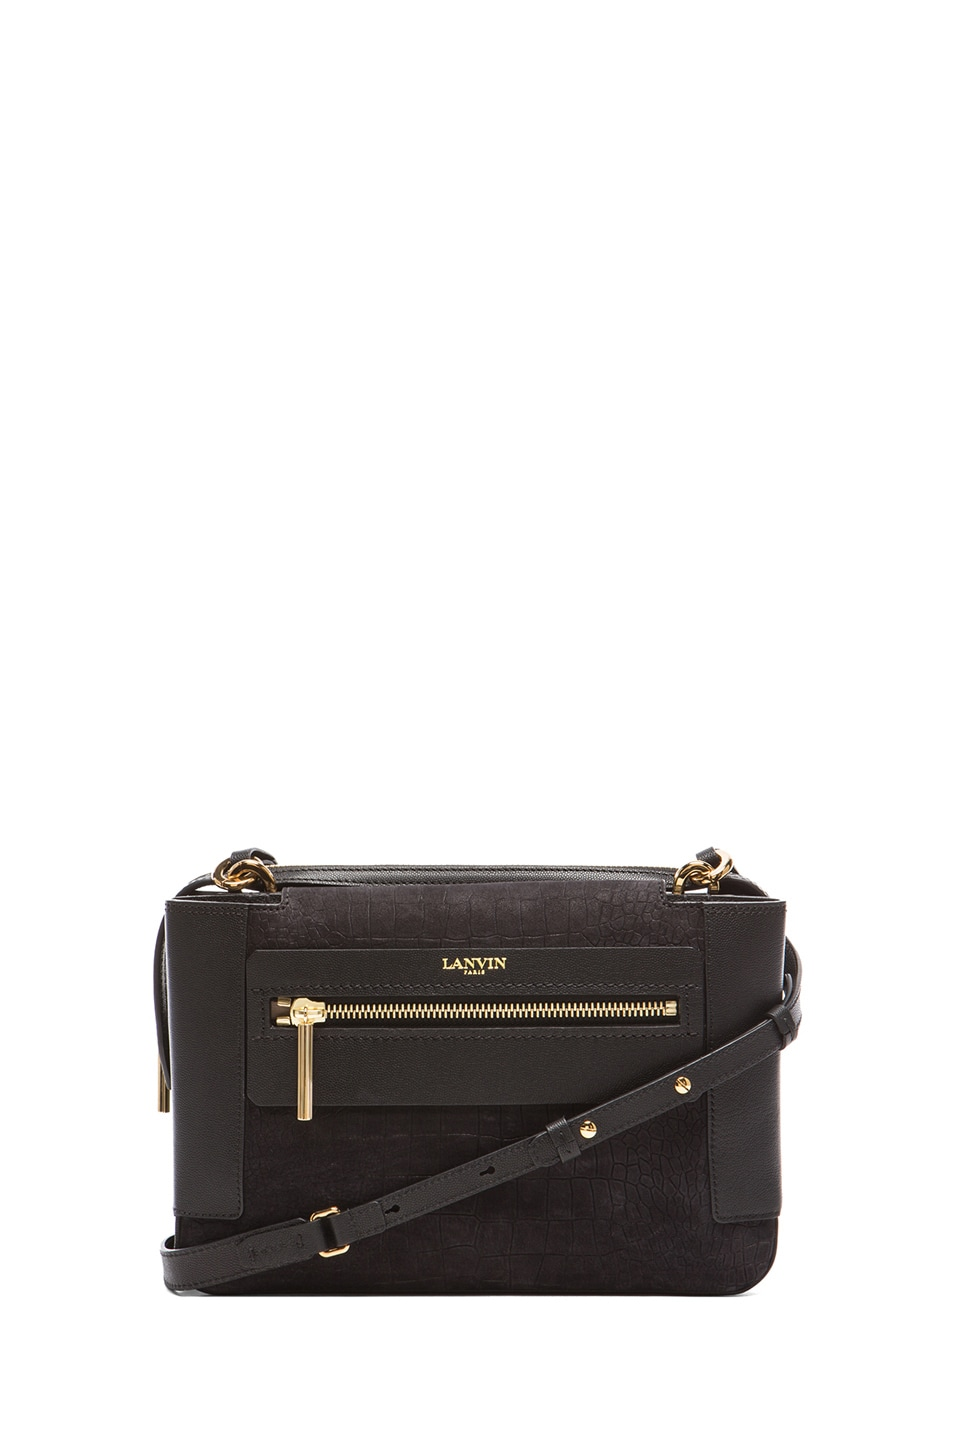 Image 1 of Lanvin Beyond Le Jour Medium Bag in Black